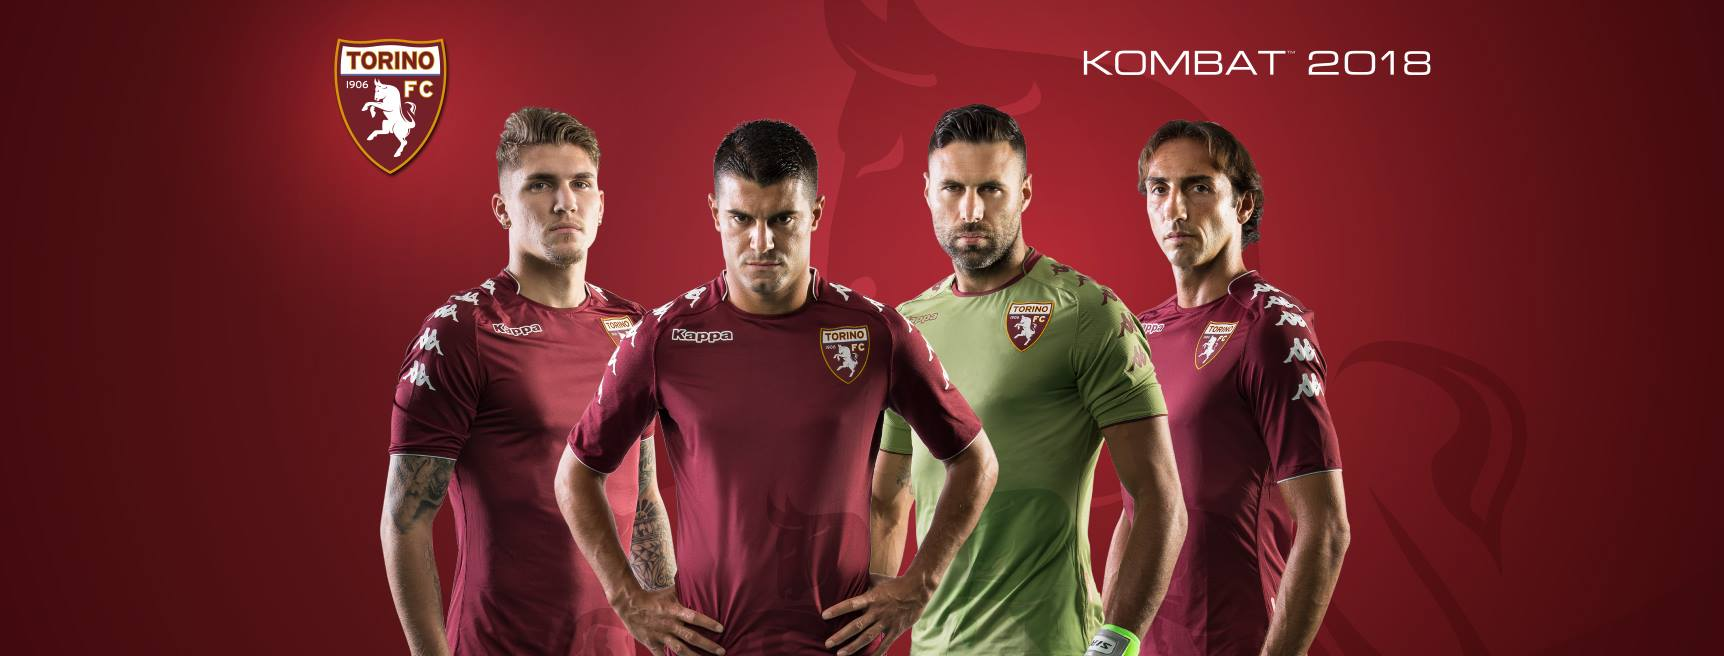 Torino Fc 2017 18 Kappa Home Away And Third Kits Football Fashion